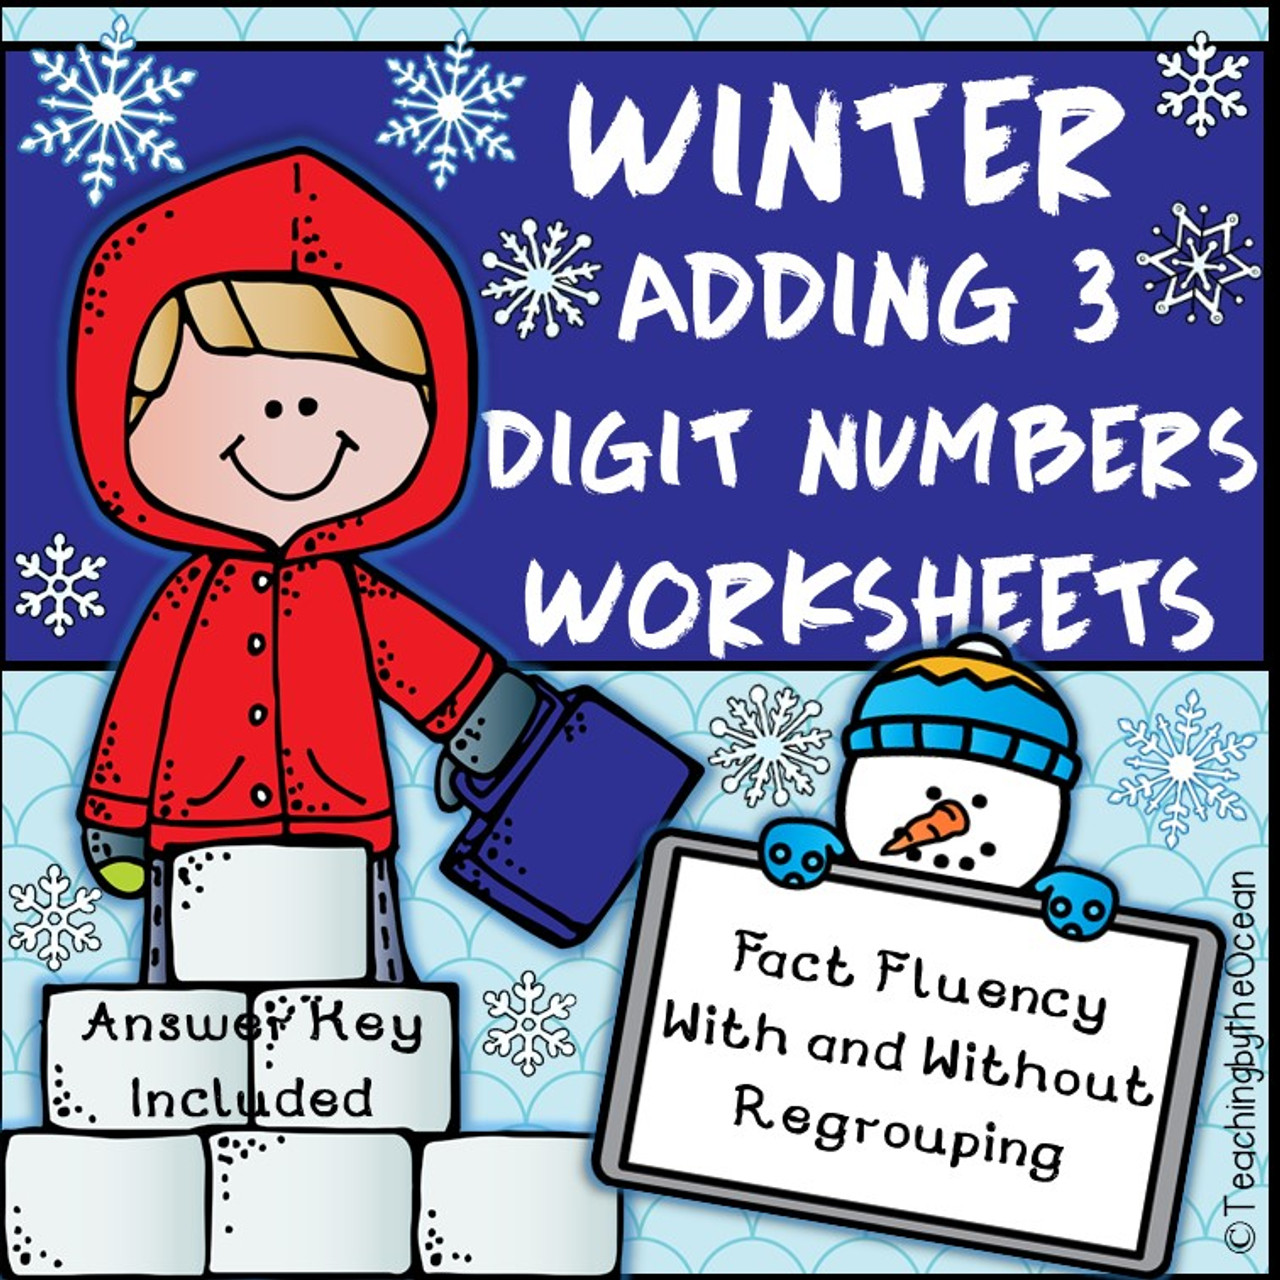 medium resolution of Adding 3 Digit Numbers Worksheets - Winter / Christmas Themed - Amped Up  Learning